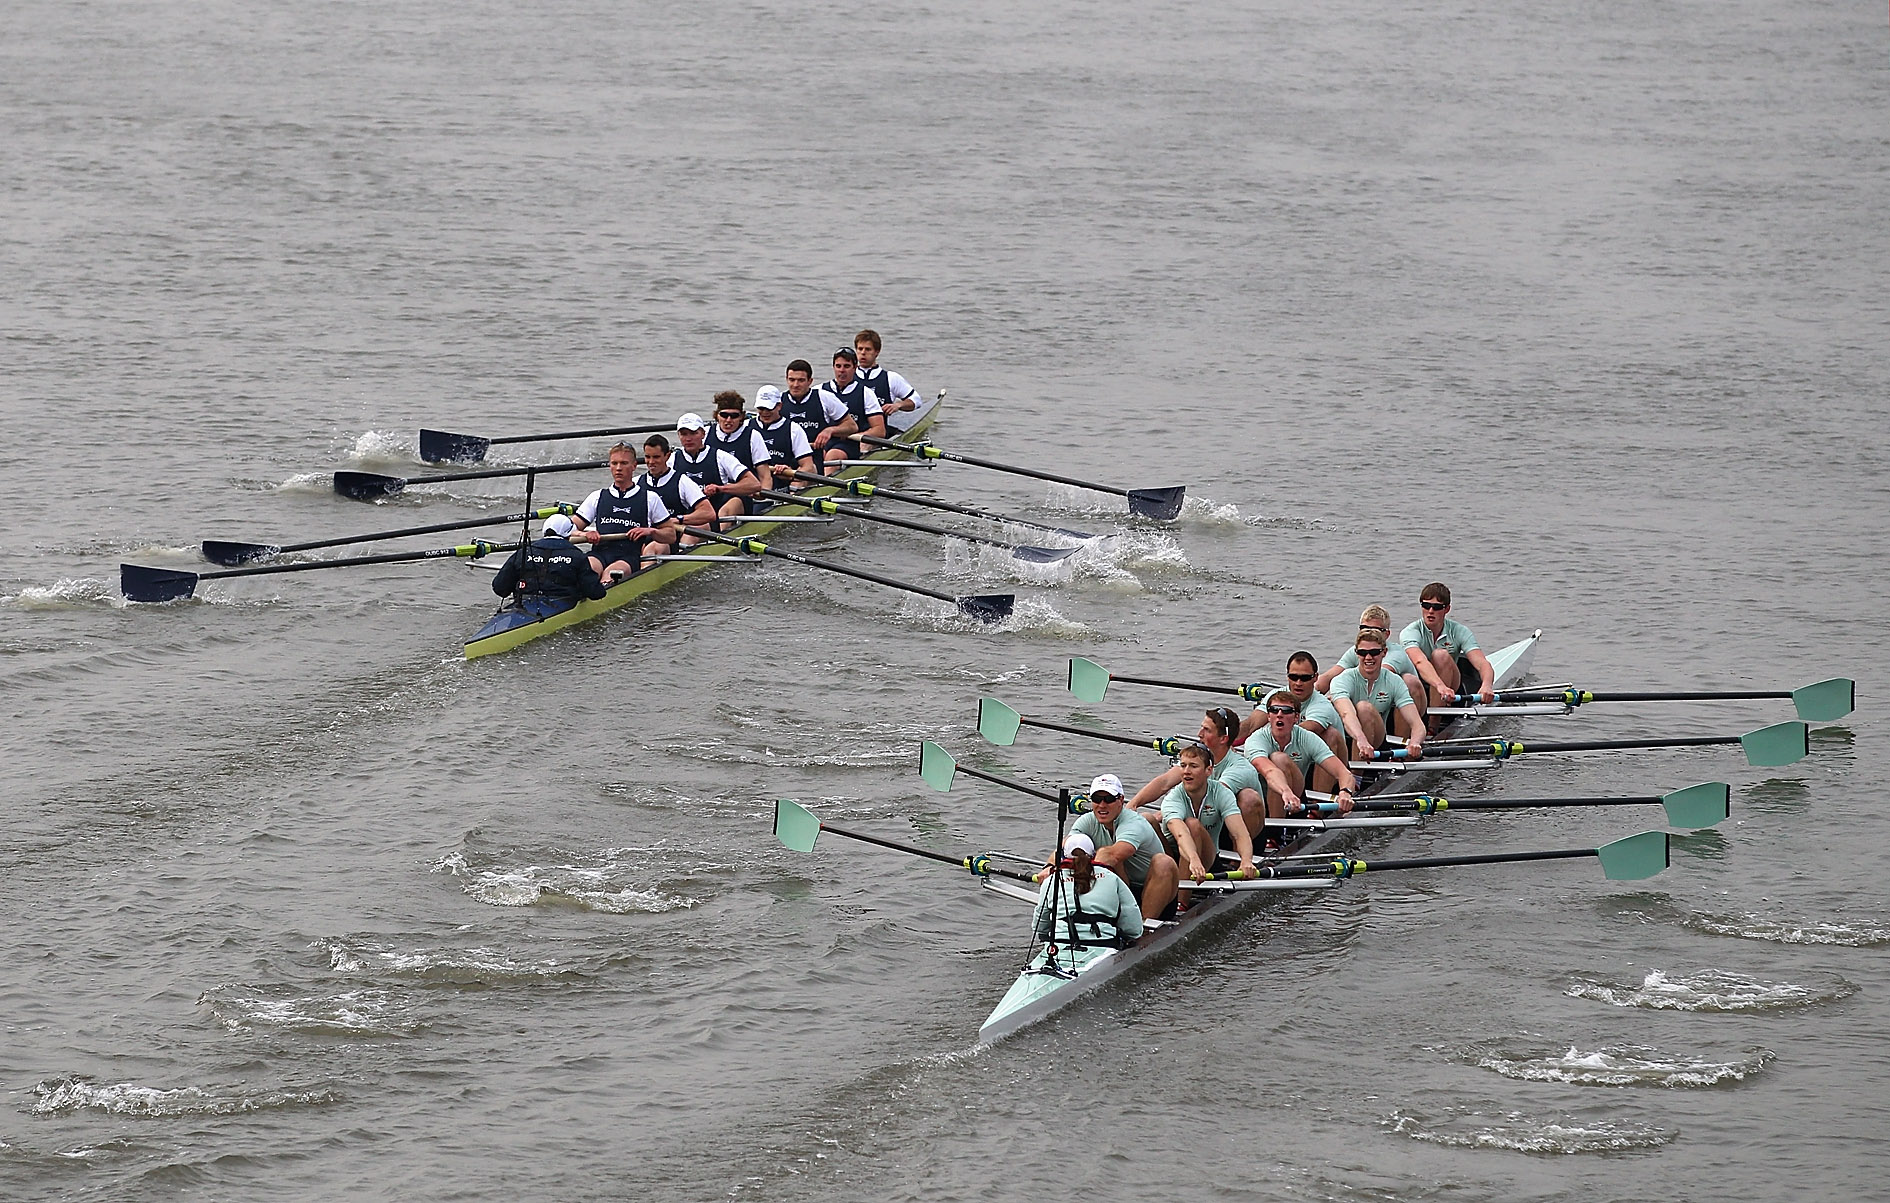 Oxford vs Cambridge Boat Race 2018 start time, odds, and who won last year?